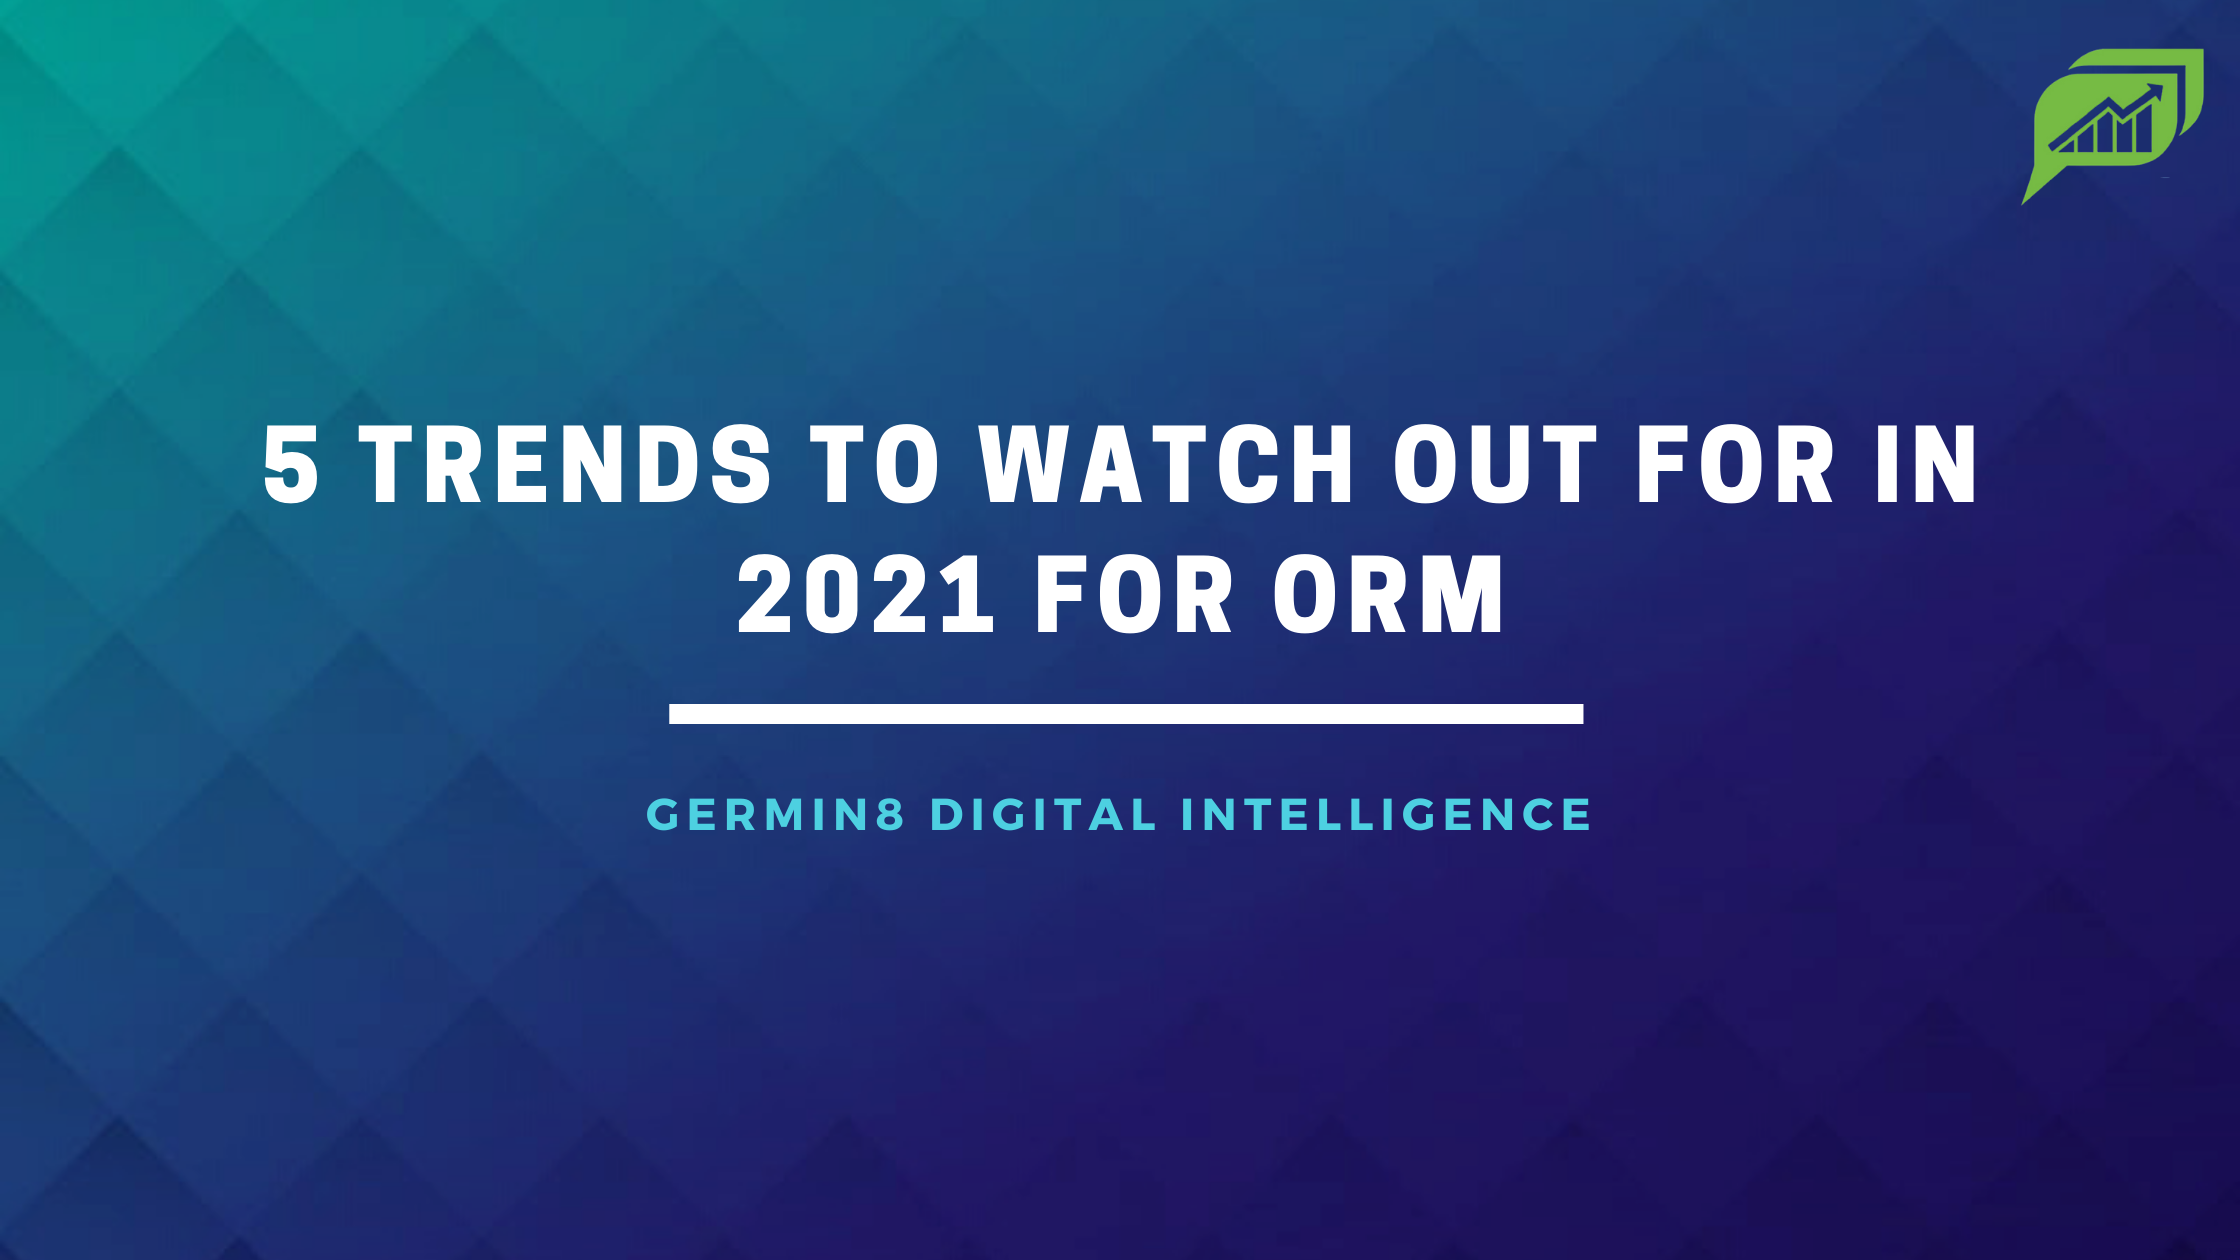 5-Trends-To-Watch-out-for-in-2021-for-orm